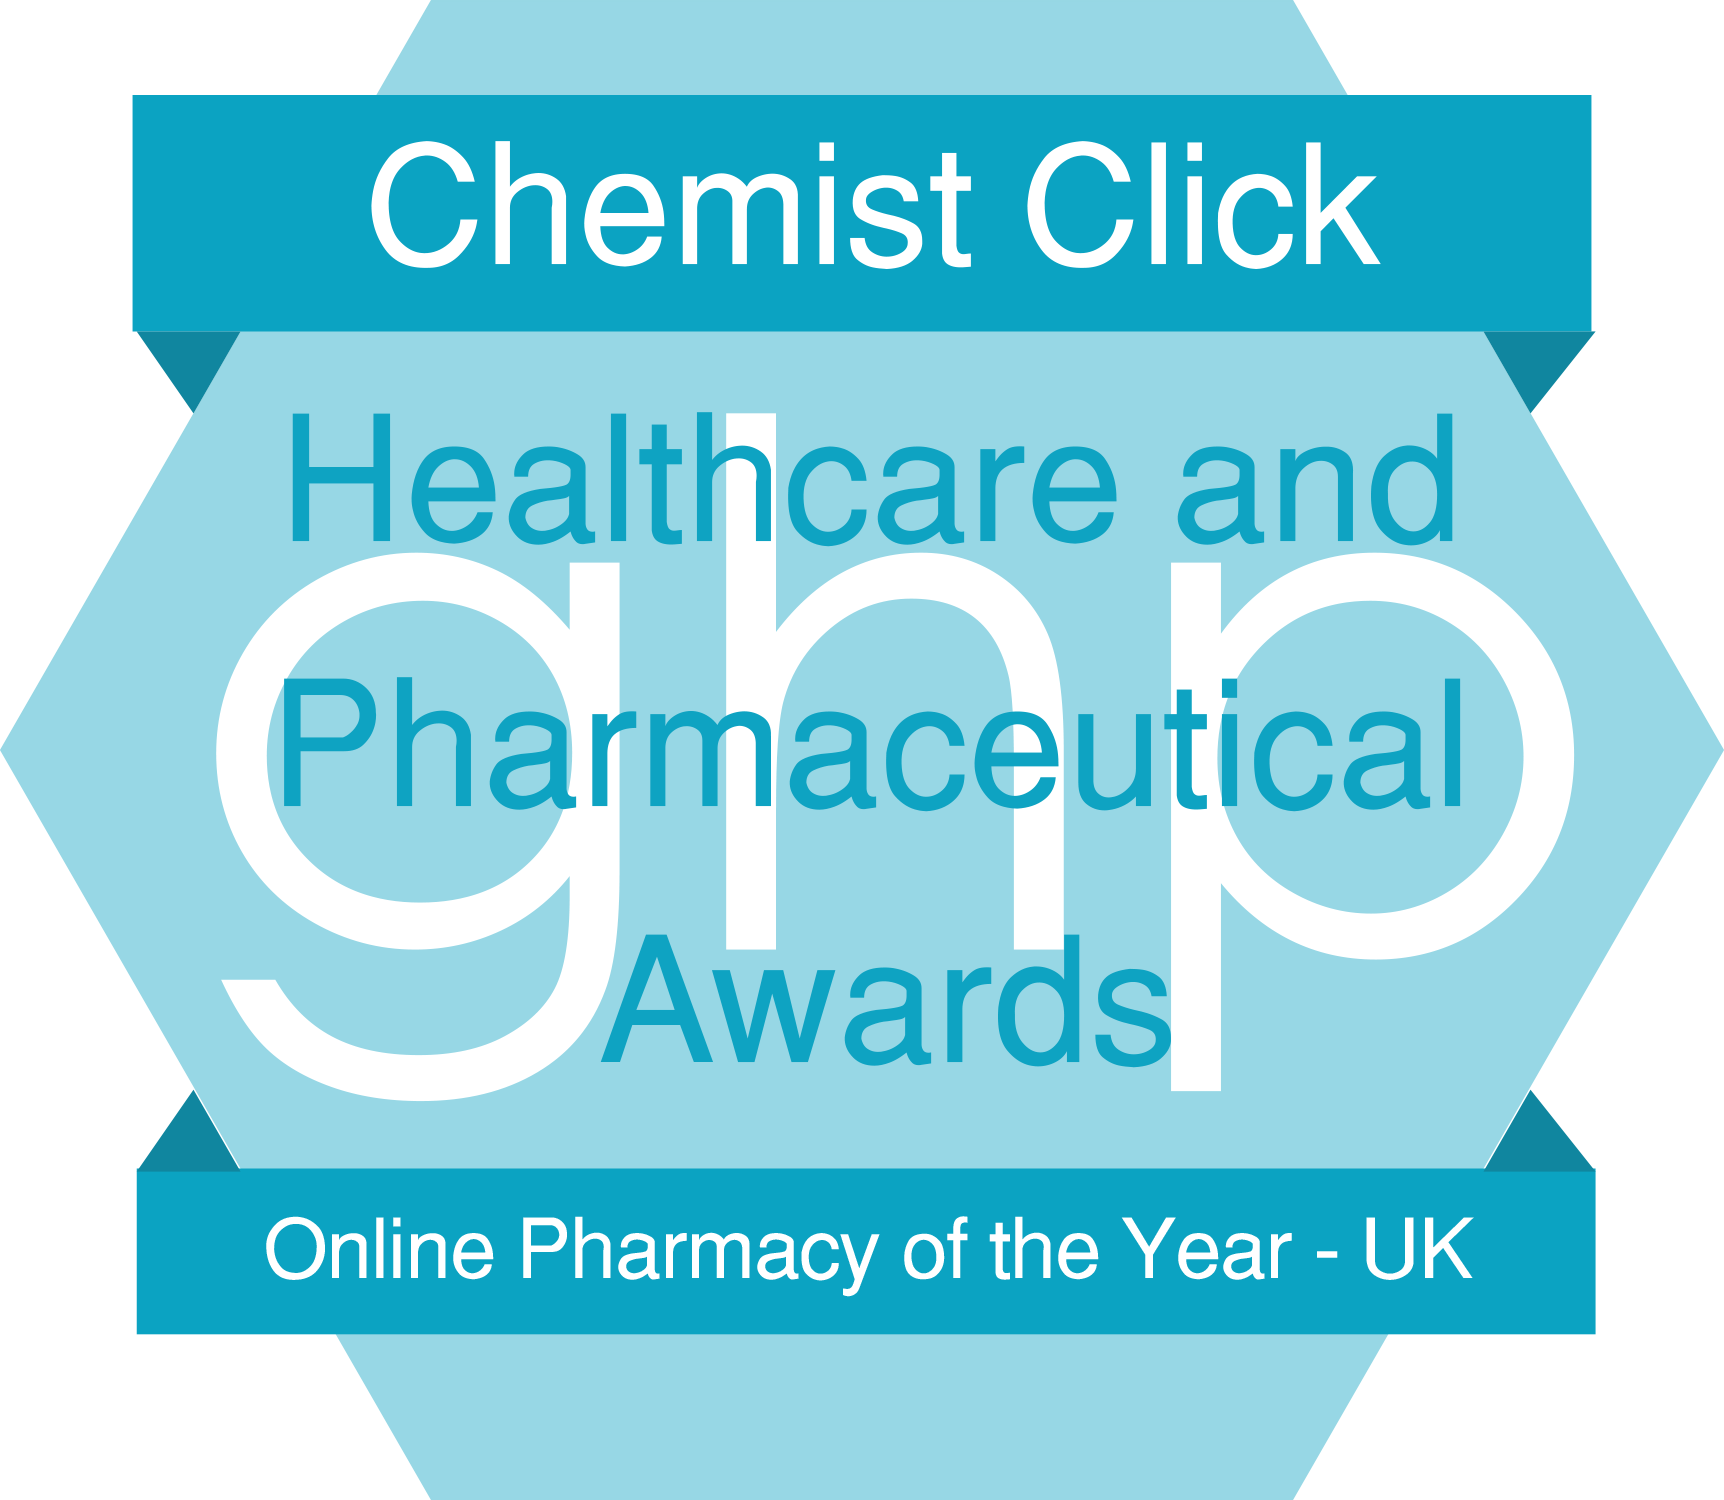 Online Pharmacy of the Year 2020 - UK